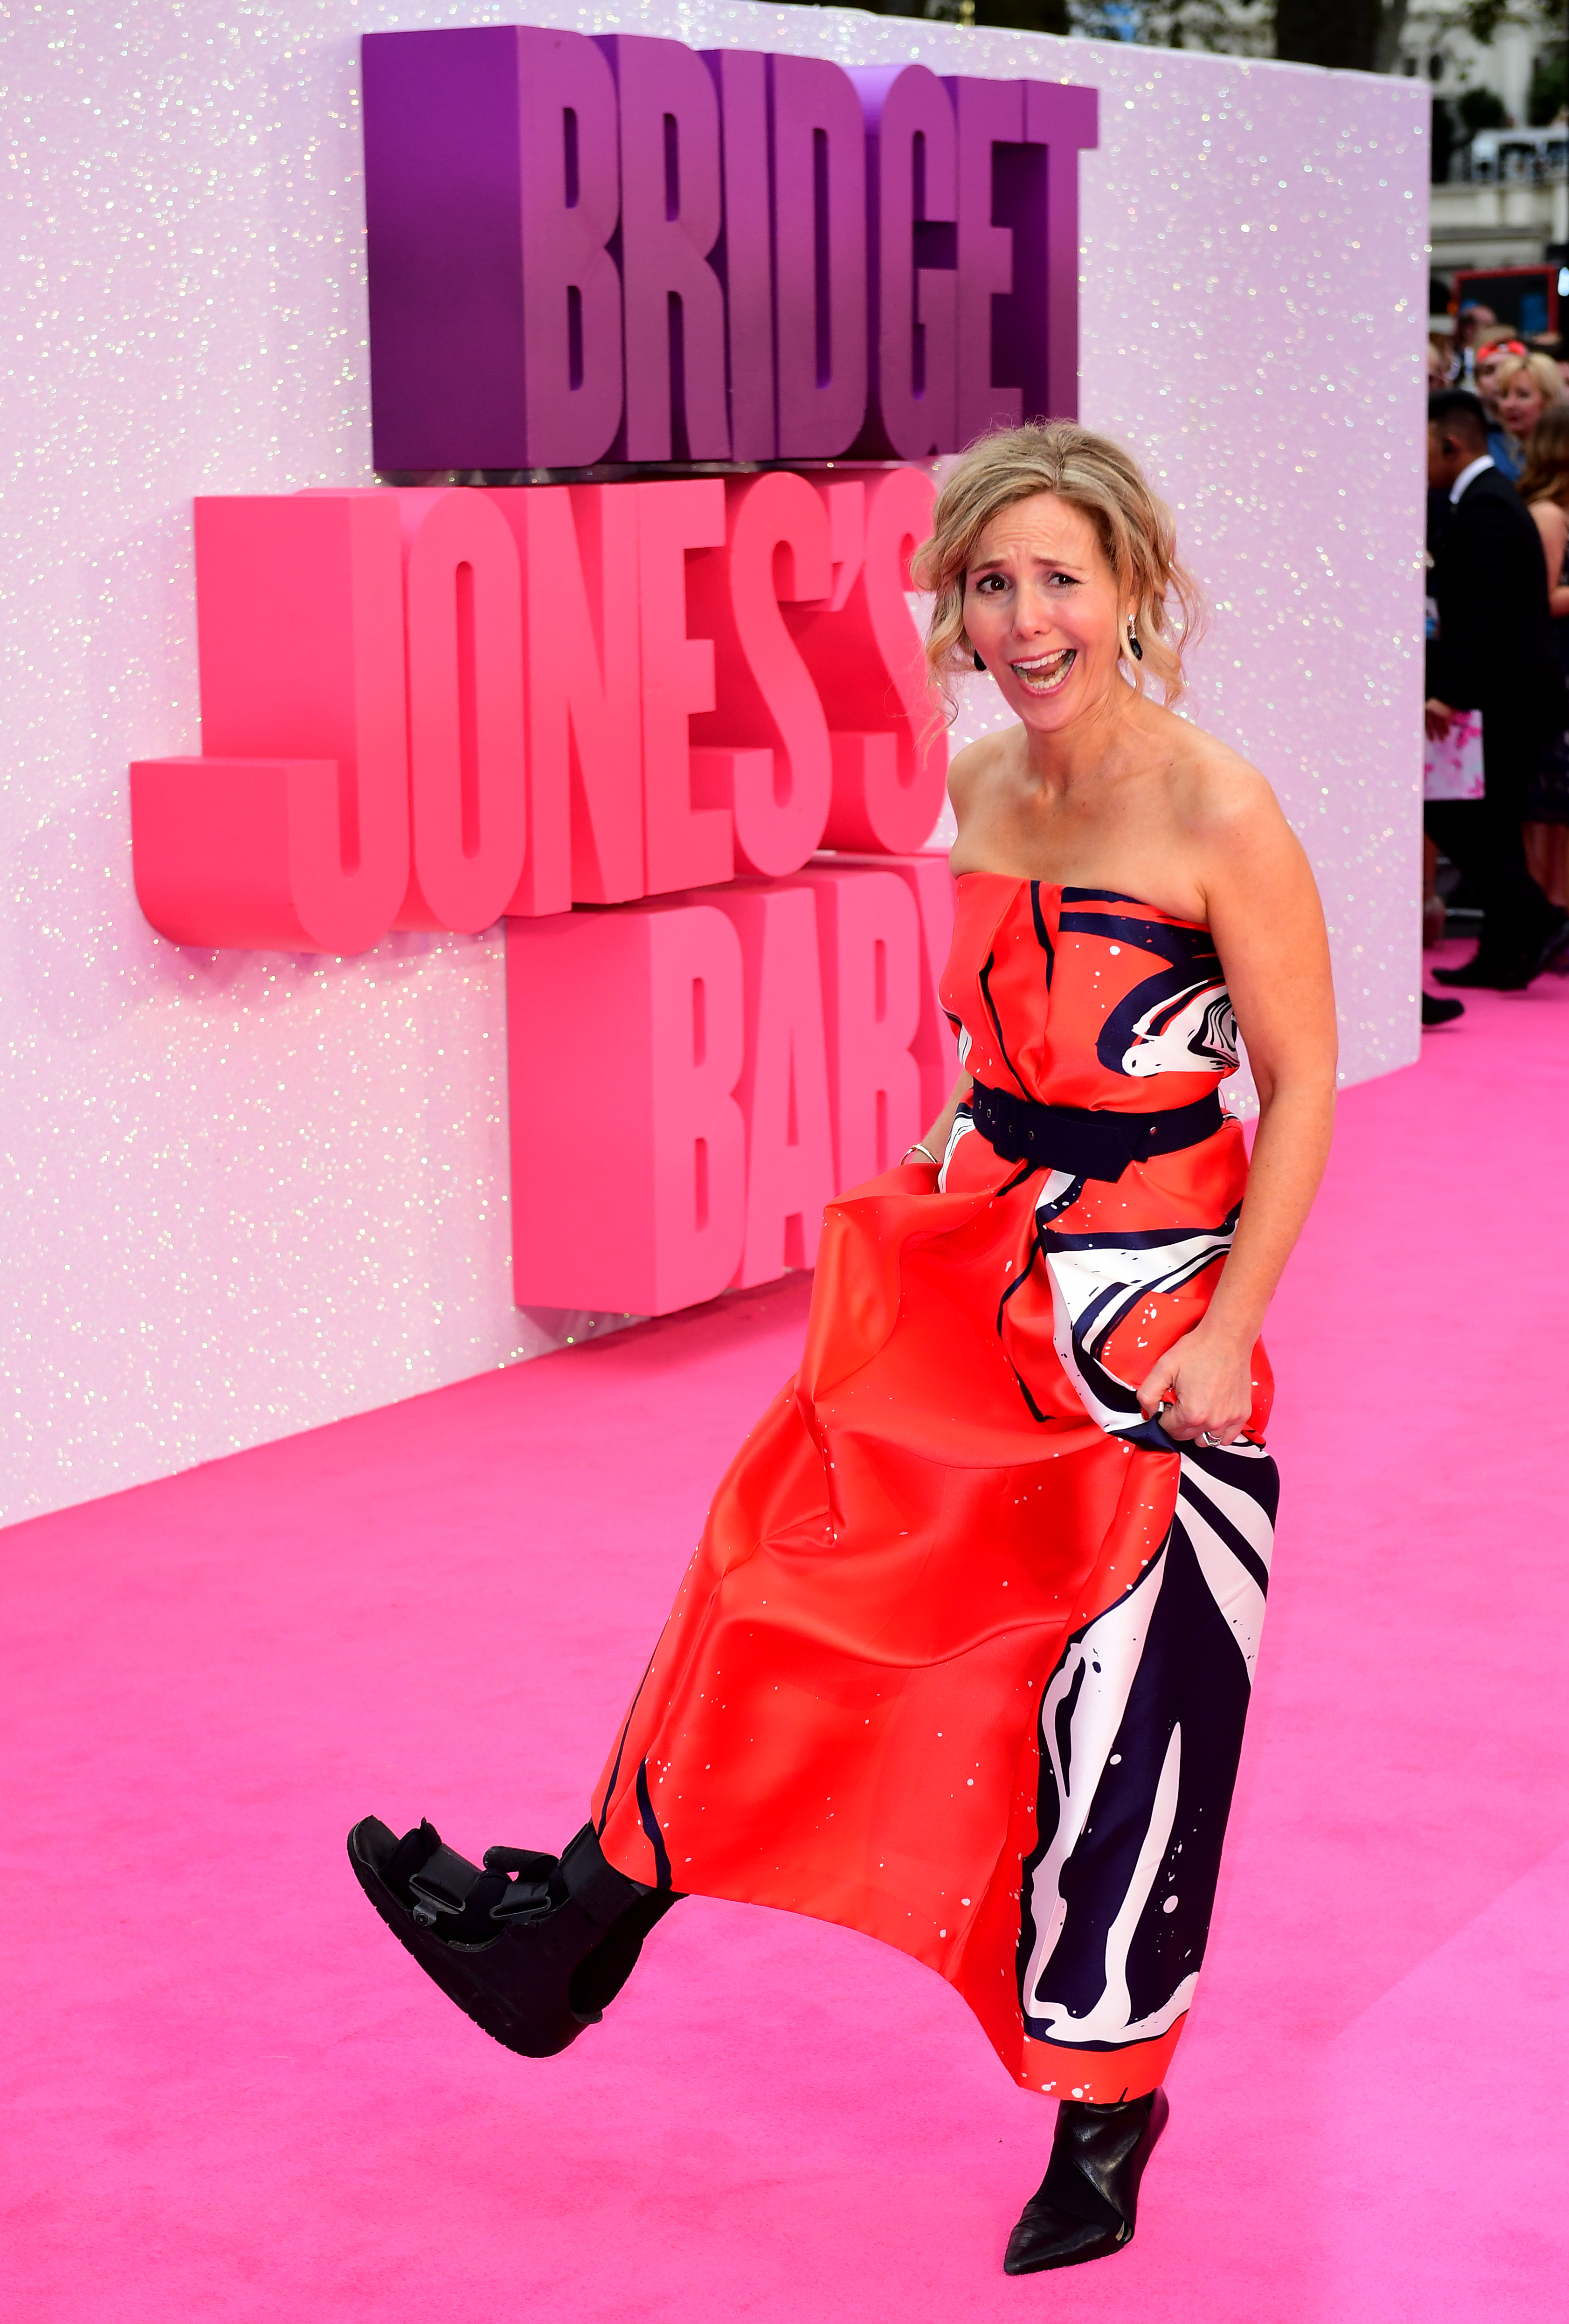 Sally Phillips at the Bridget Jones's Baby premiere in 2016, with an injured foot!